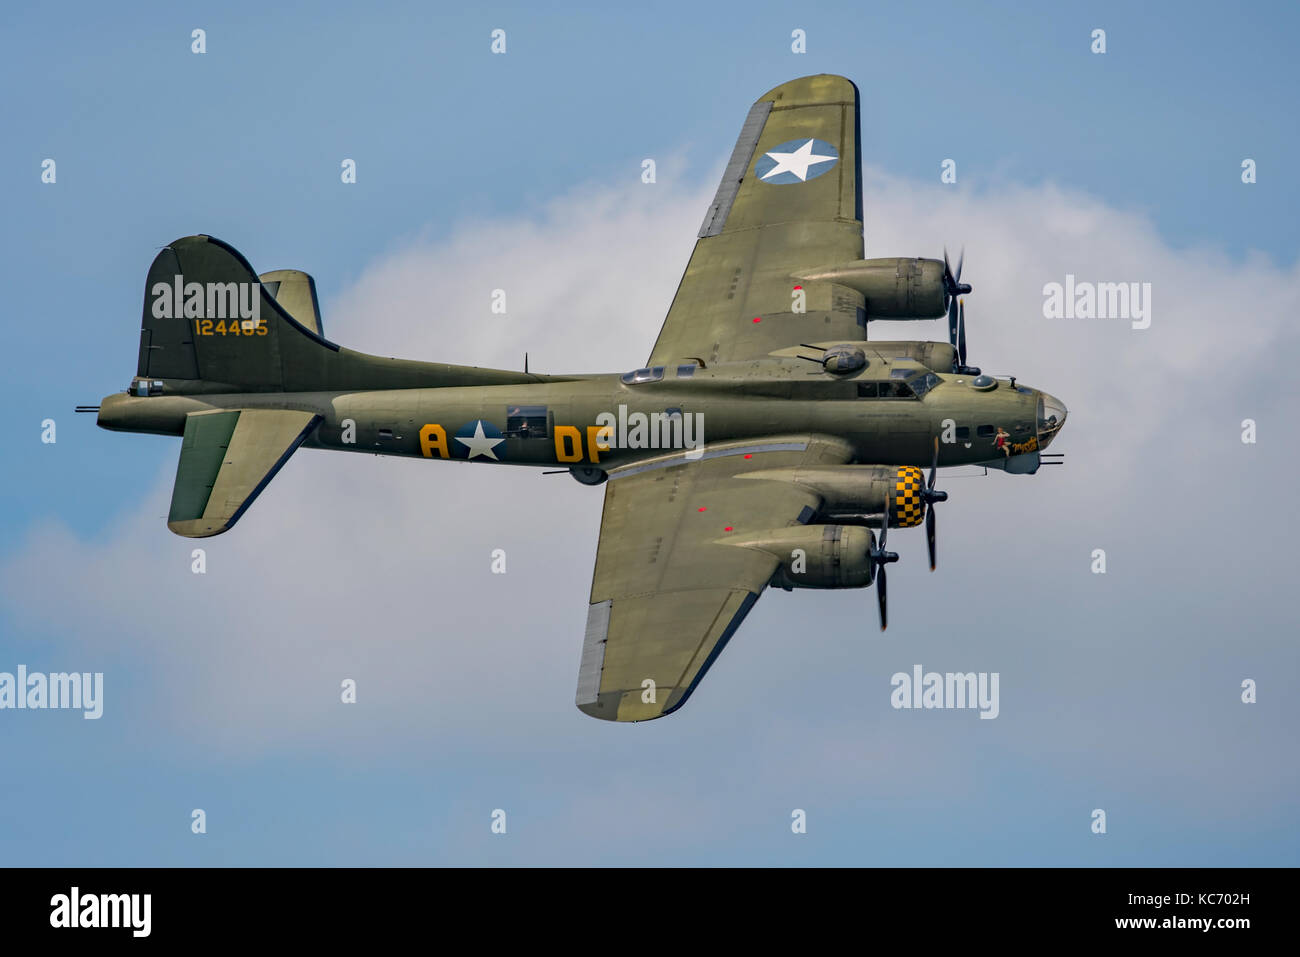 B-17 Flying Fortress in flight at 2017 Dunsfold Airshow. Stock Photo